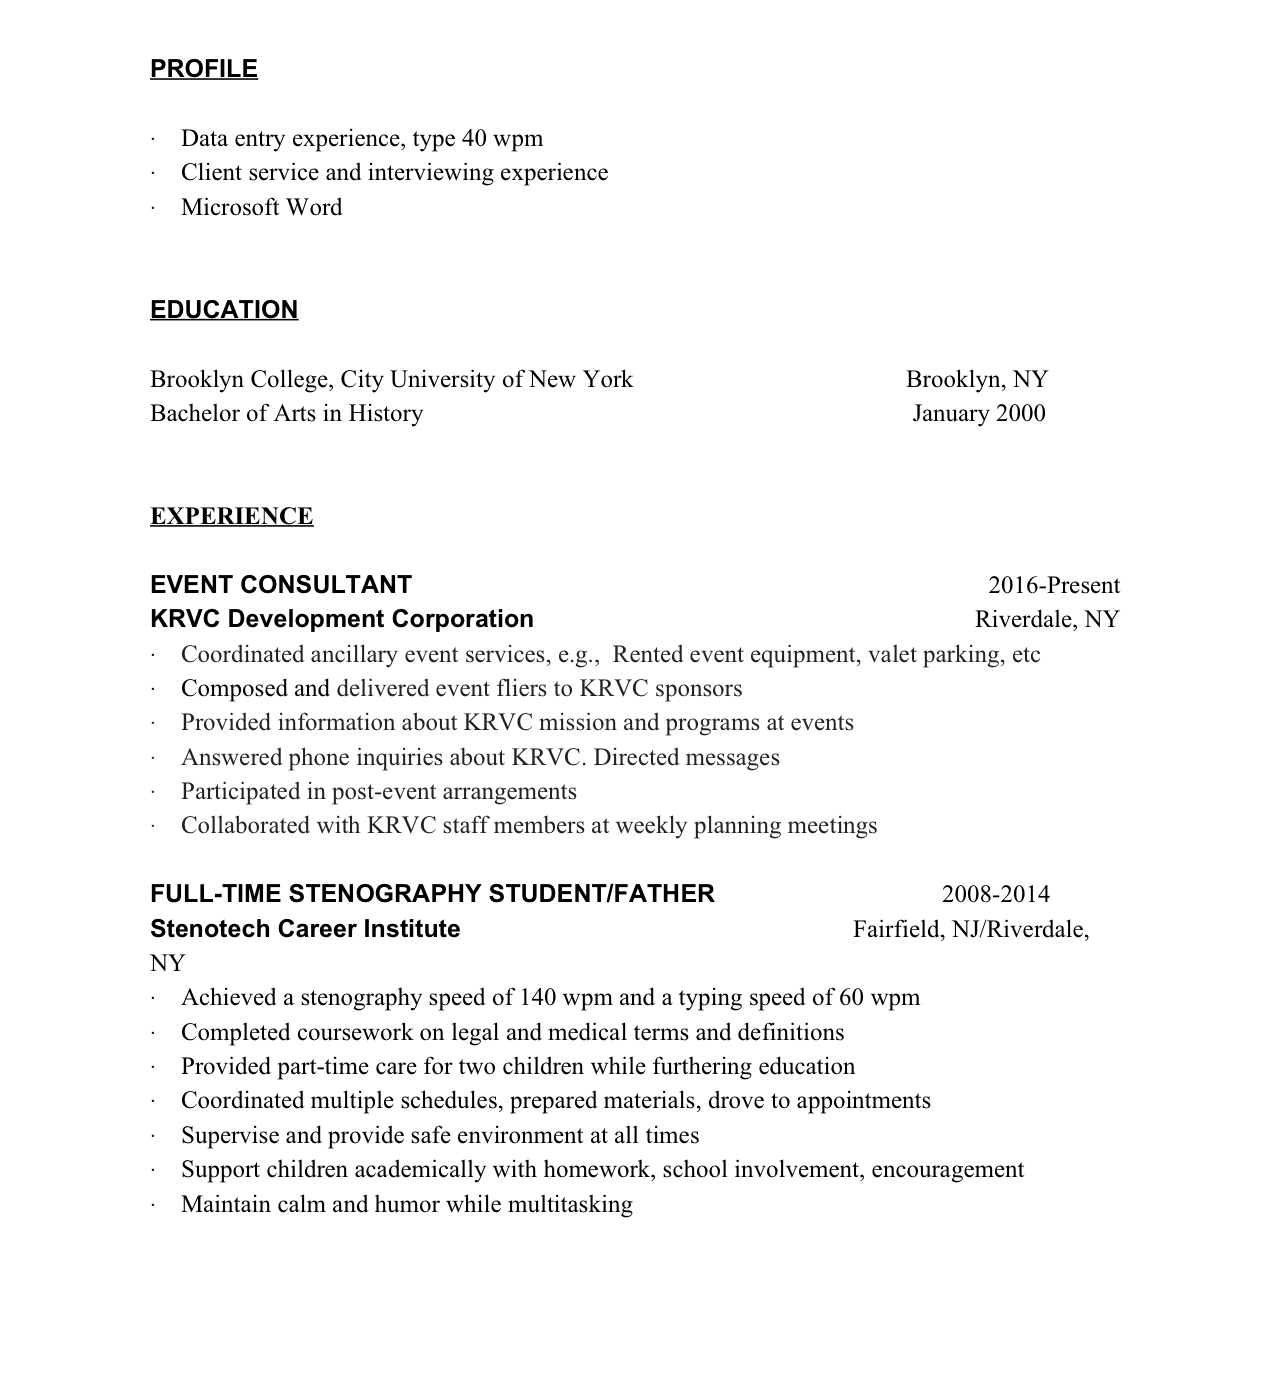 Resumes KRVC - Microsoft word photography invoice template marshalls online store